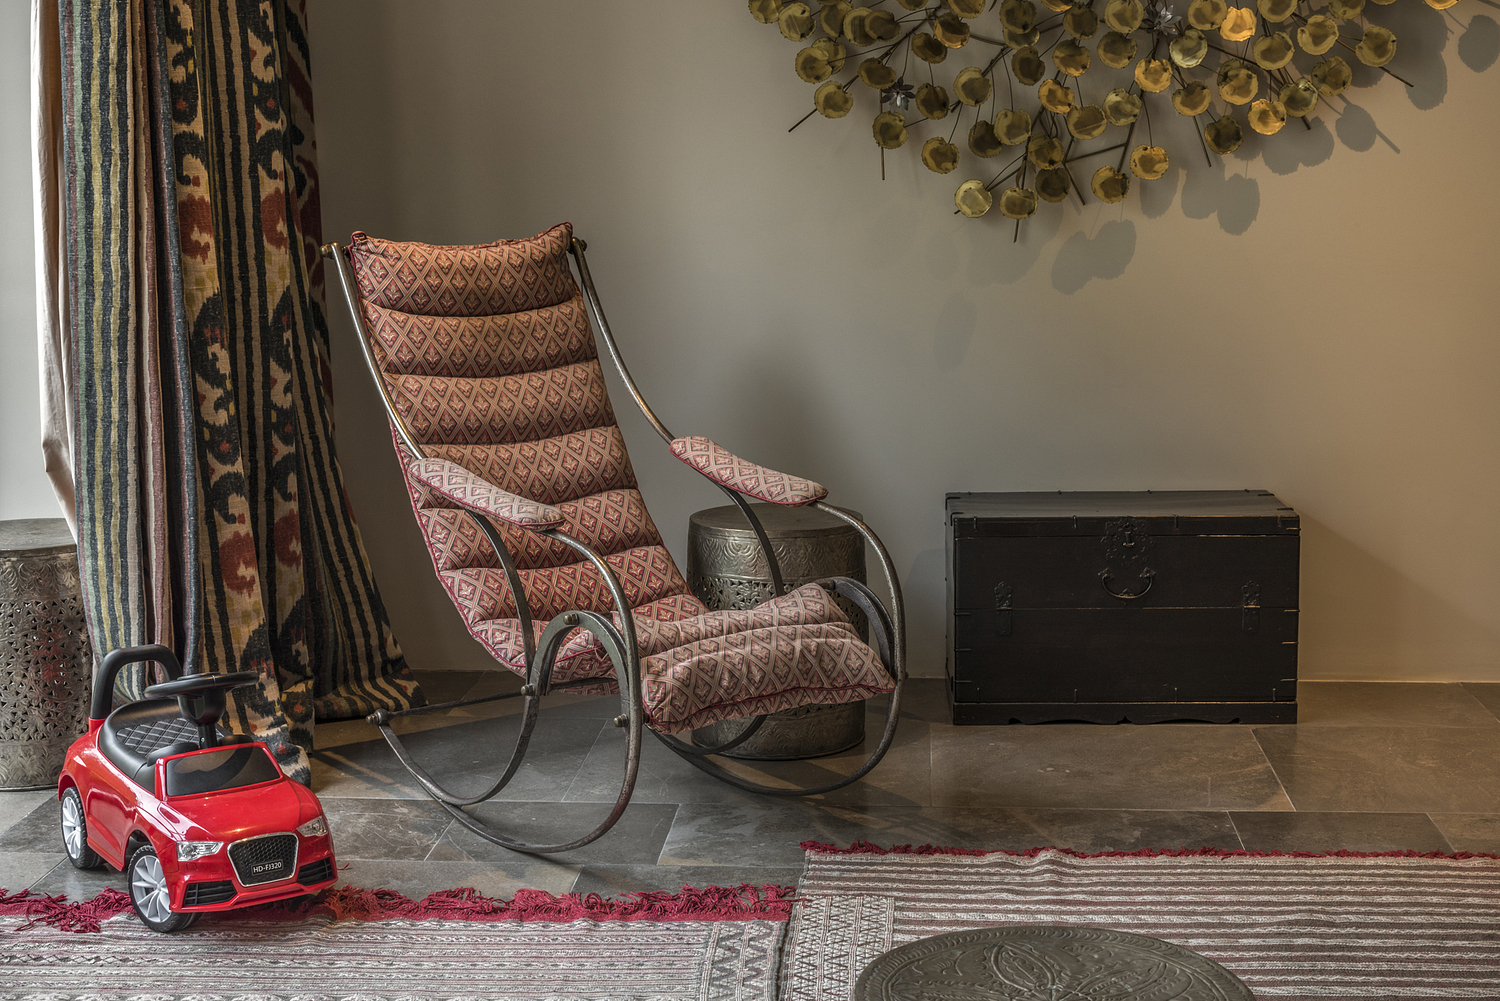 Lounge detail with stone floor and rugs, London